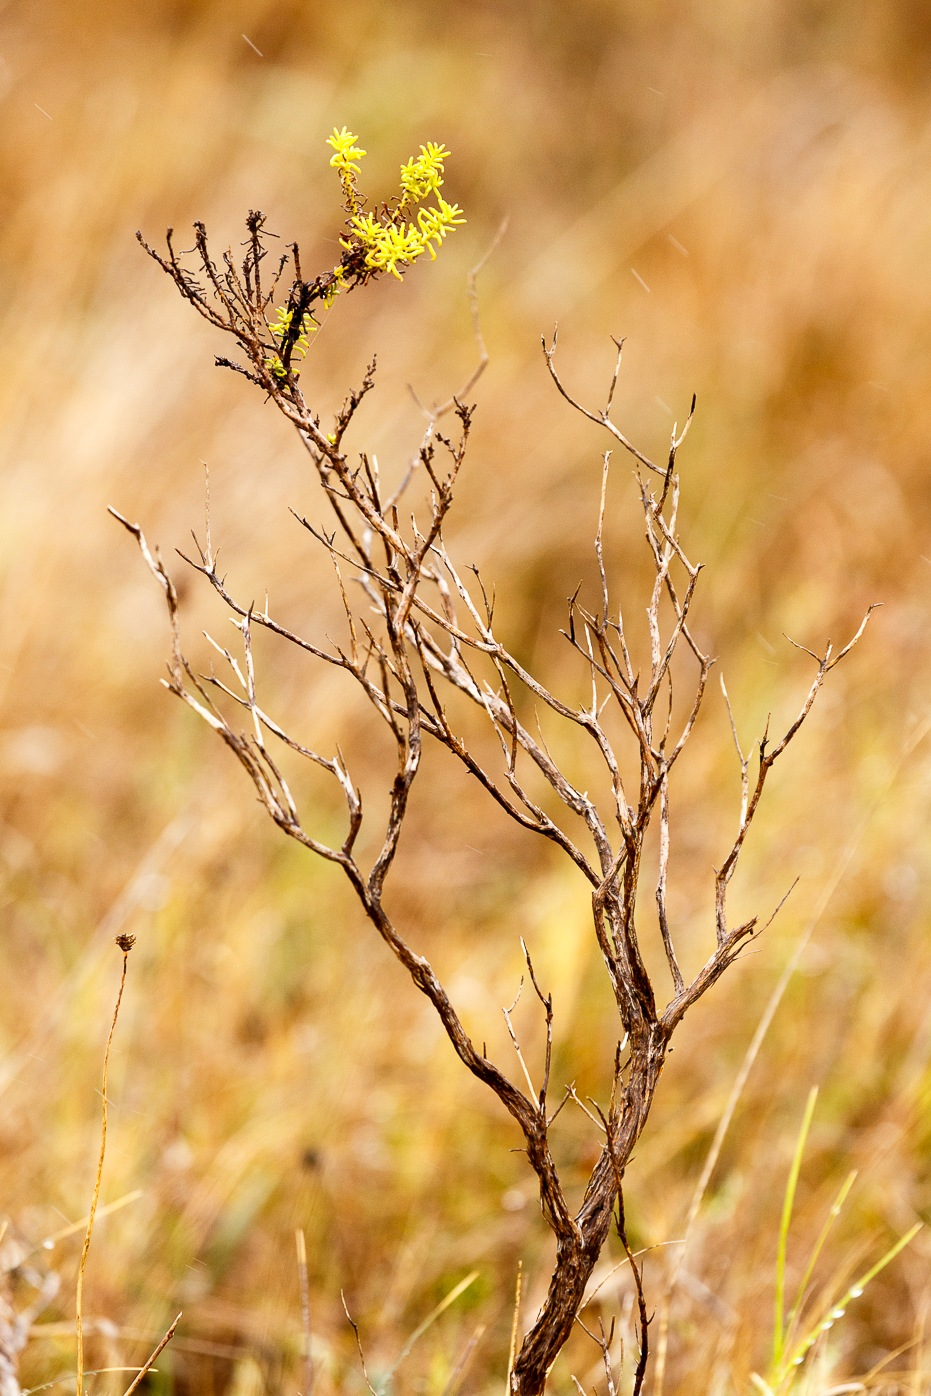 The beginning of new life for the small tree  by Charissa de Scande Lotter